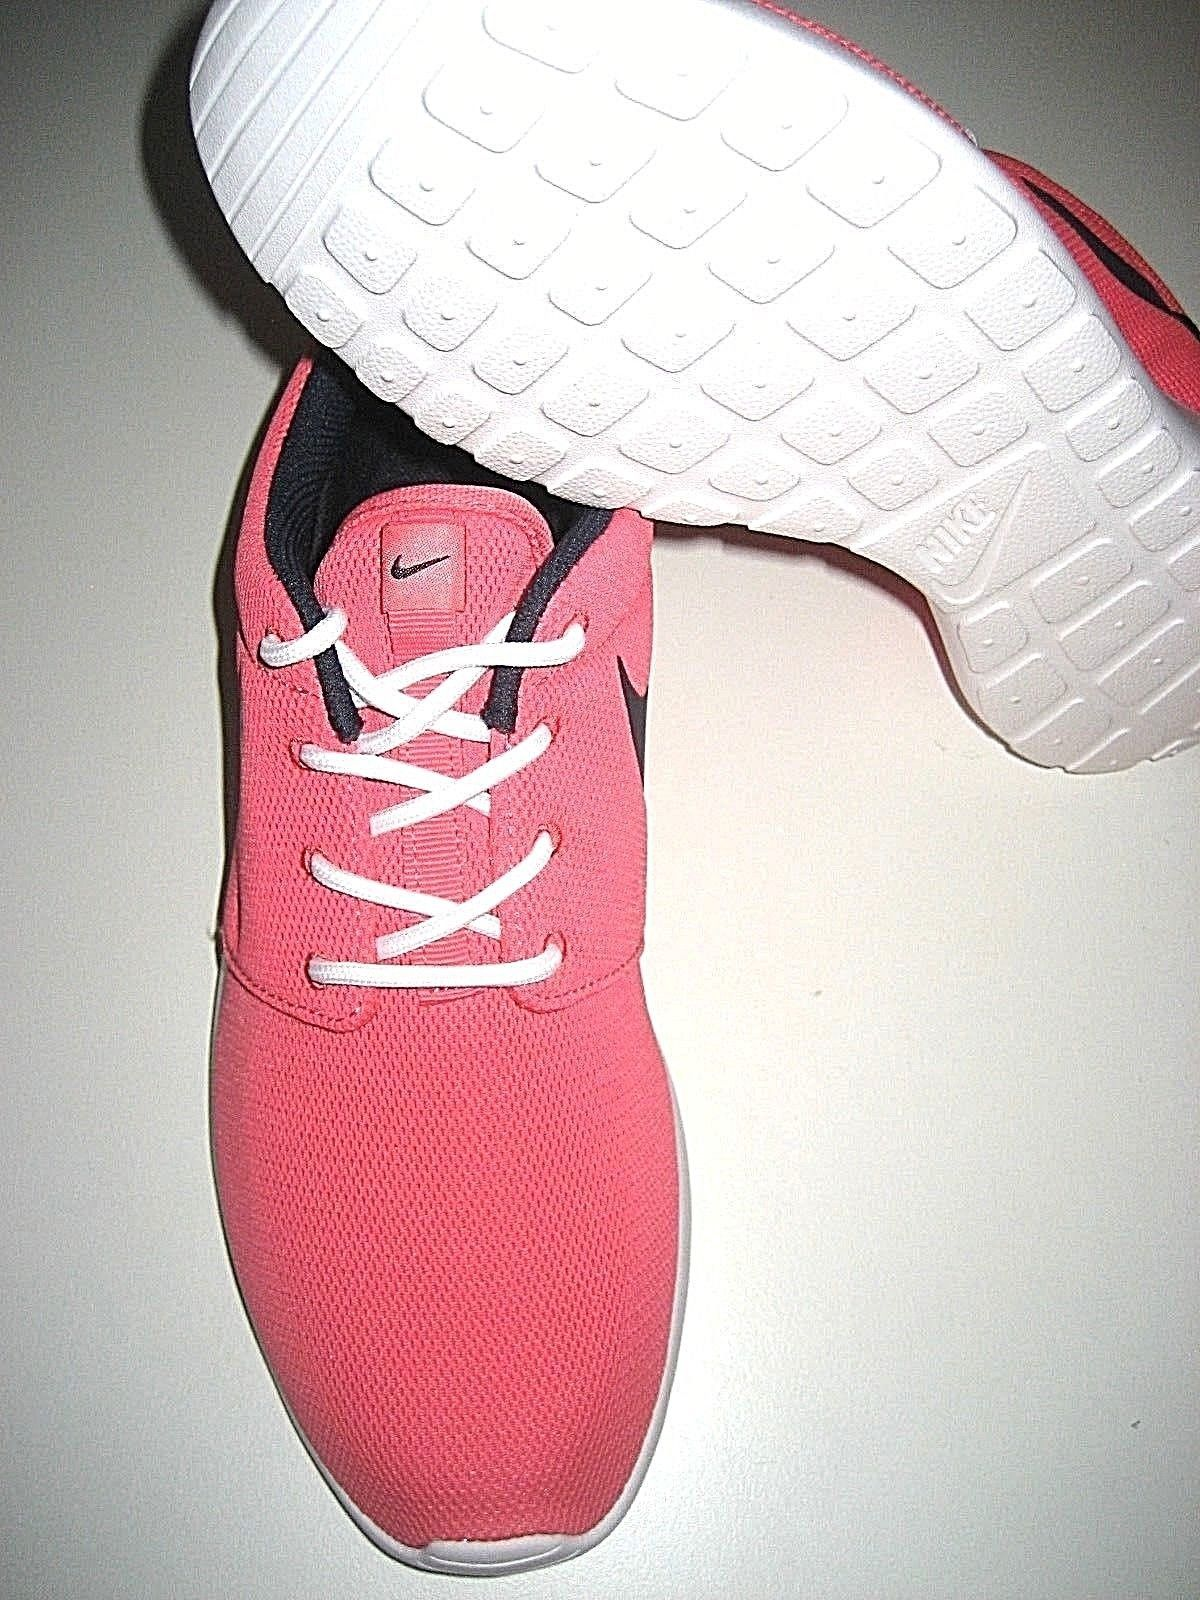 4bc7ac9d47b5 Nike Womens Roshe One Training Running Shoes Sea Coral Pink White Size 8 NEW